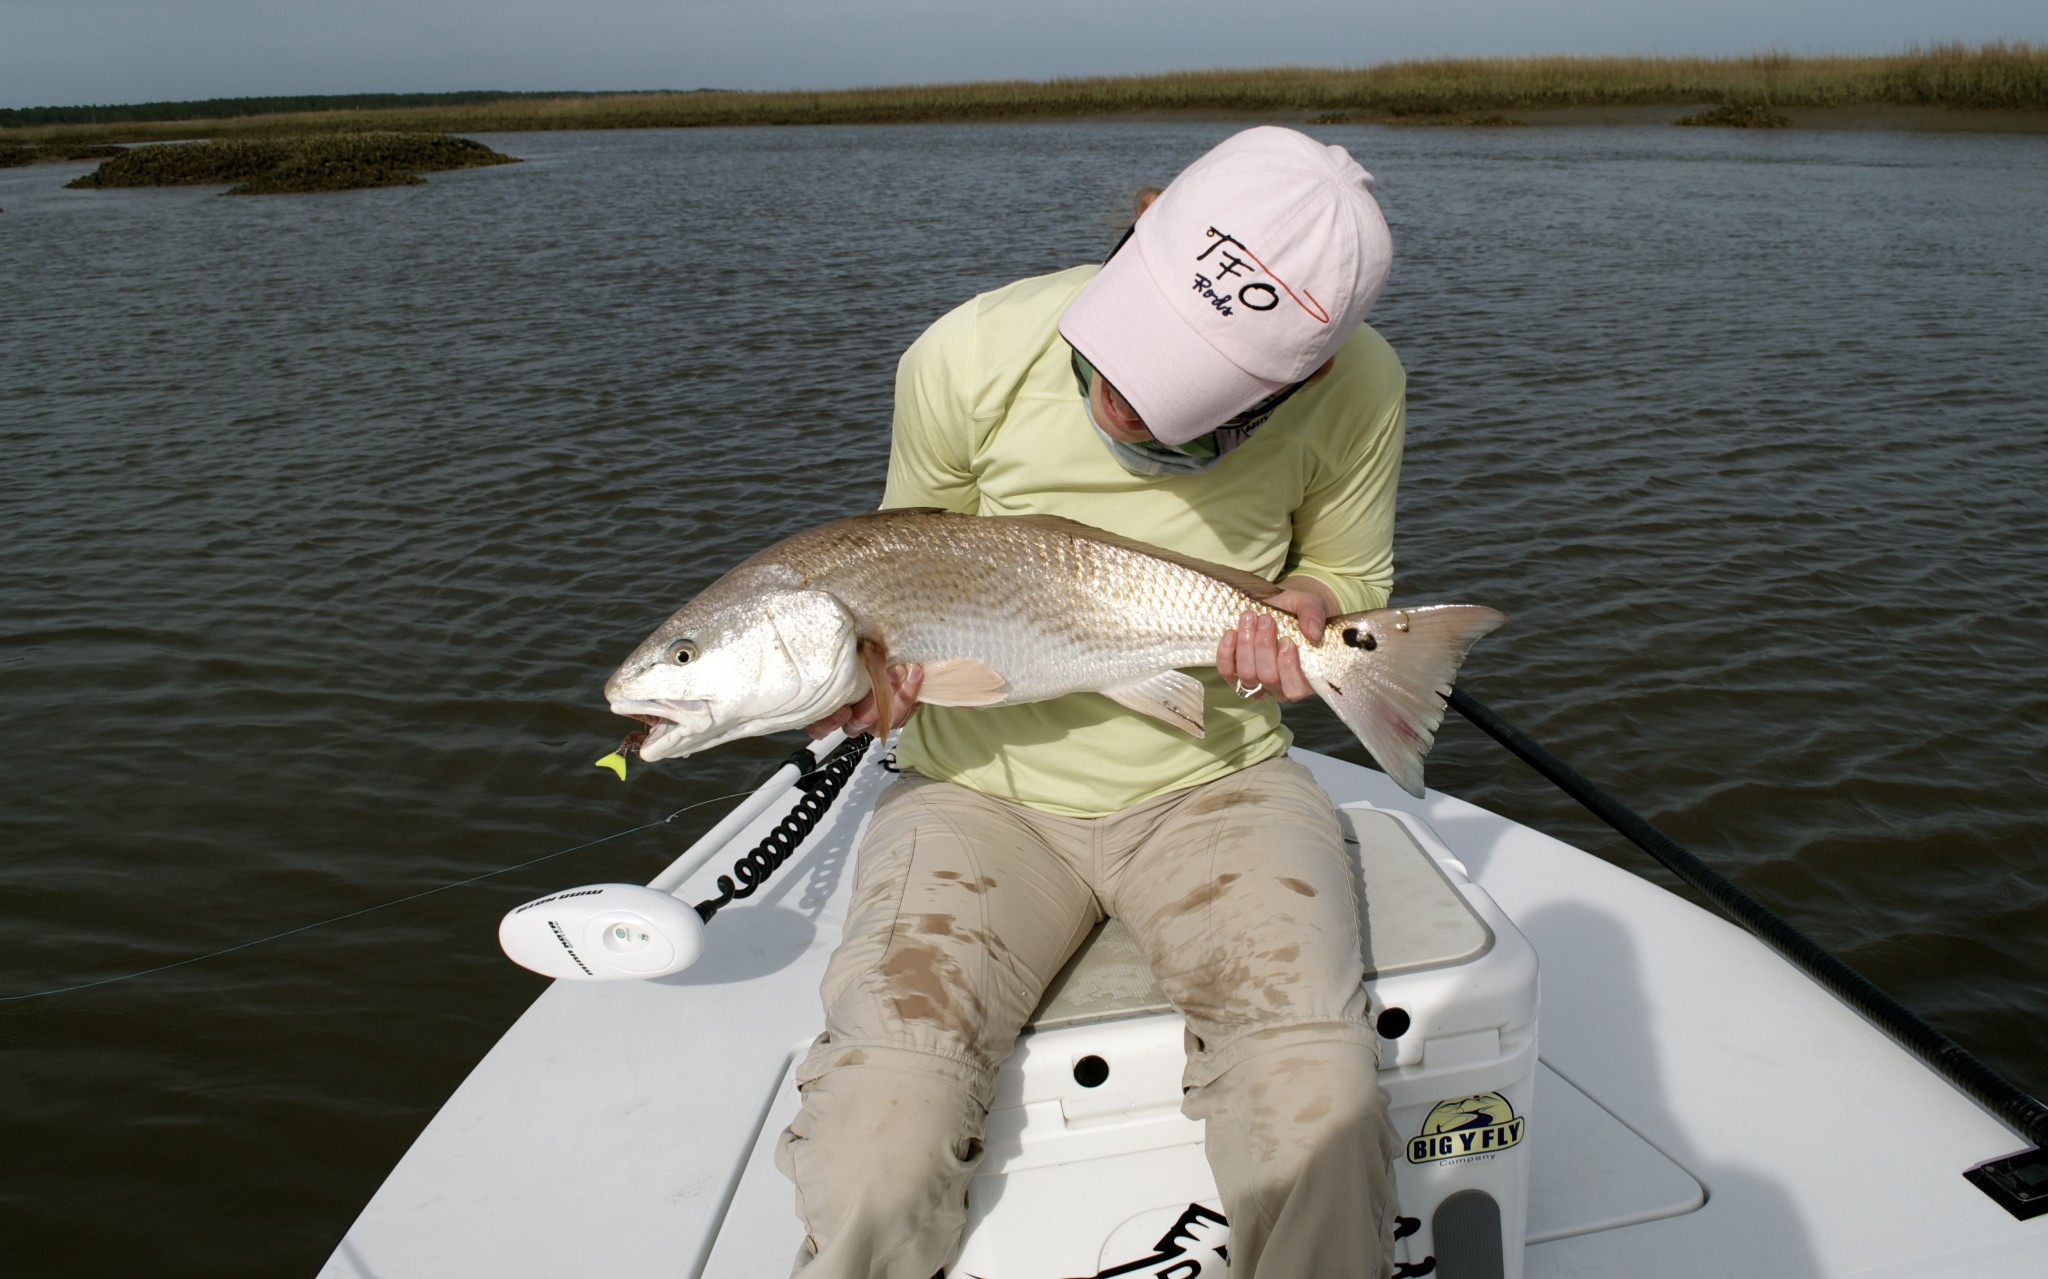 Myrtle beach fishing charters early spring living for Myrtle beach fishing guides